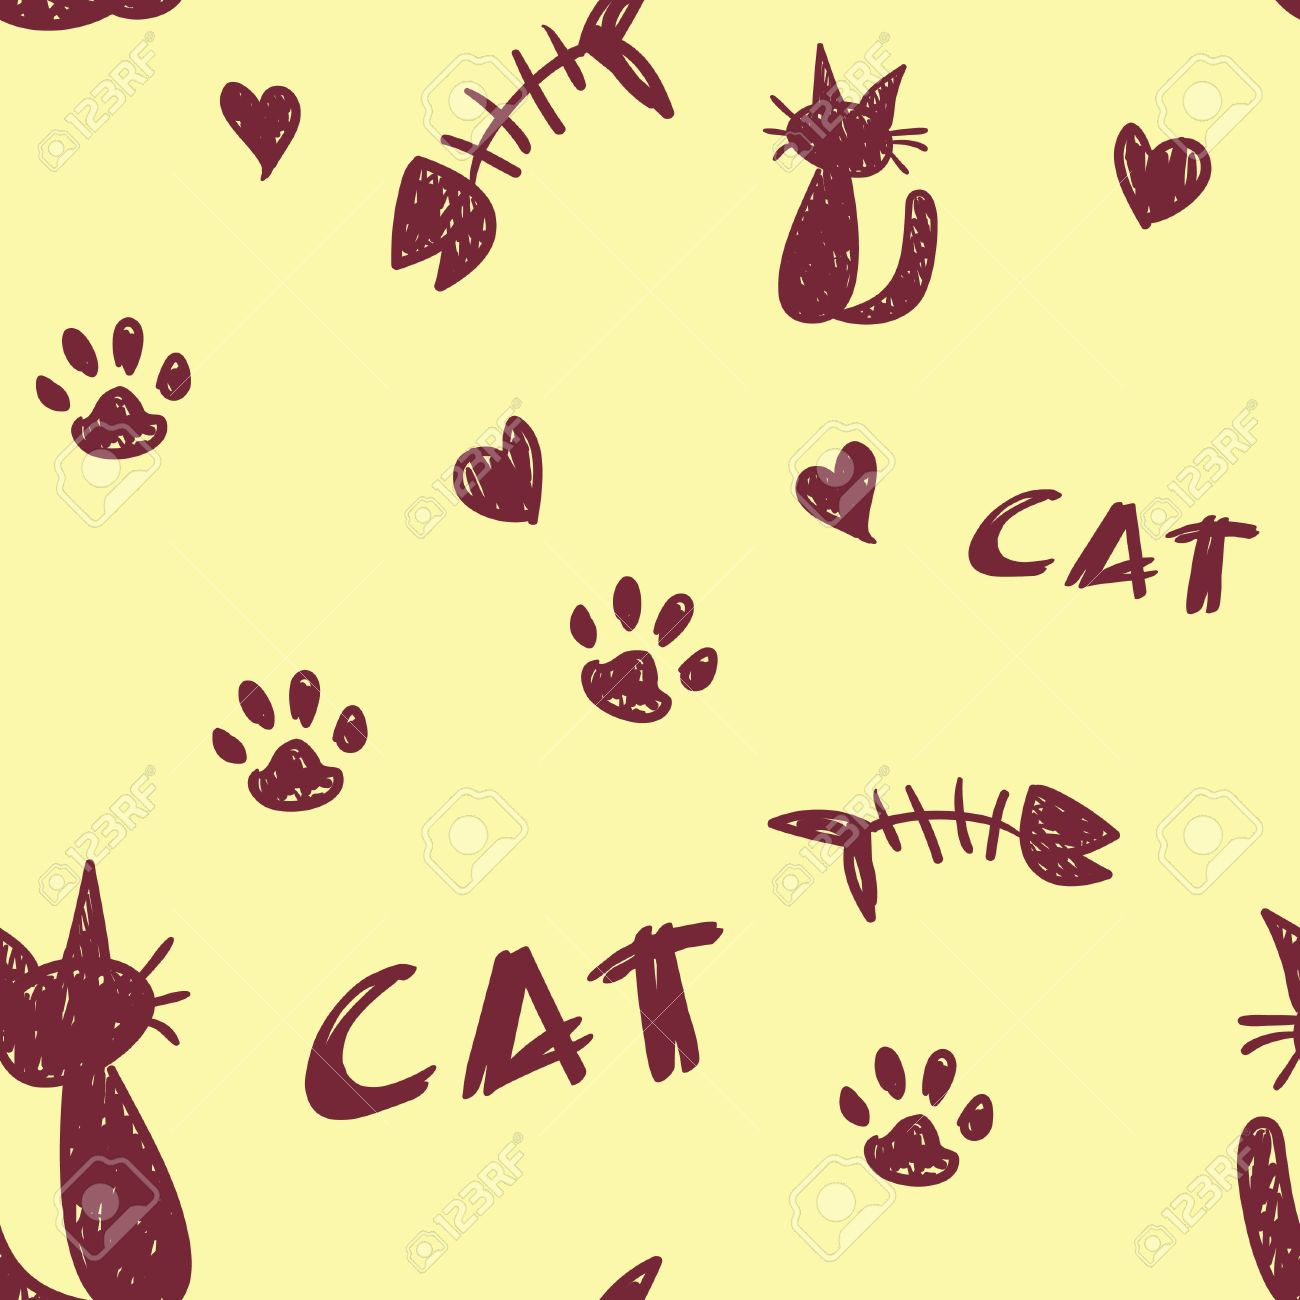 Cat Paw Print Drawing at GetDrawings.com | Free for personal use Cat ...